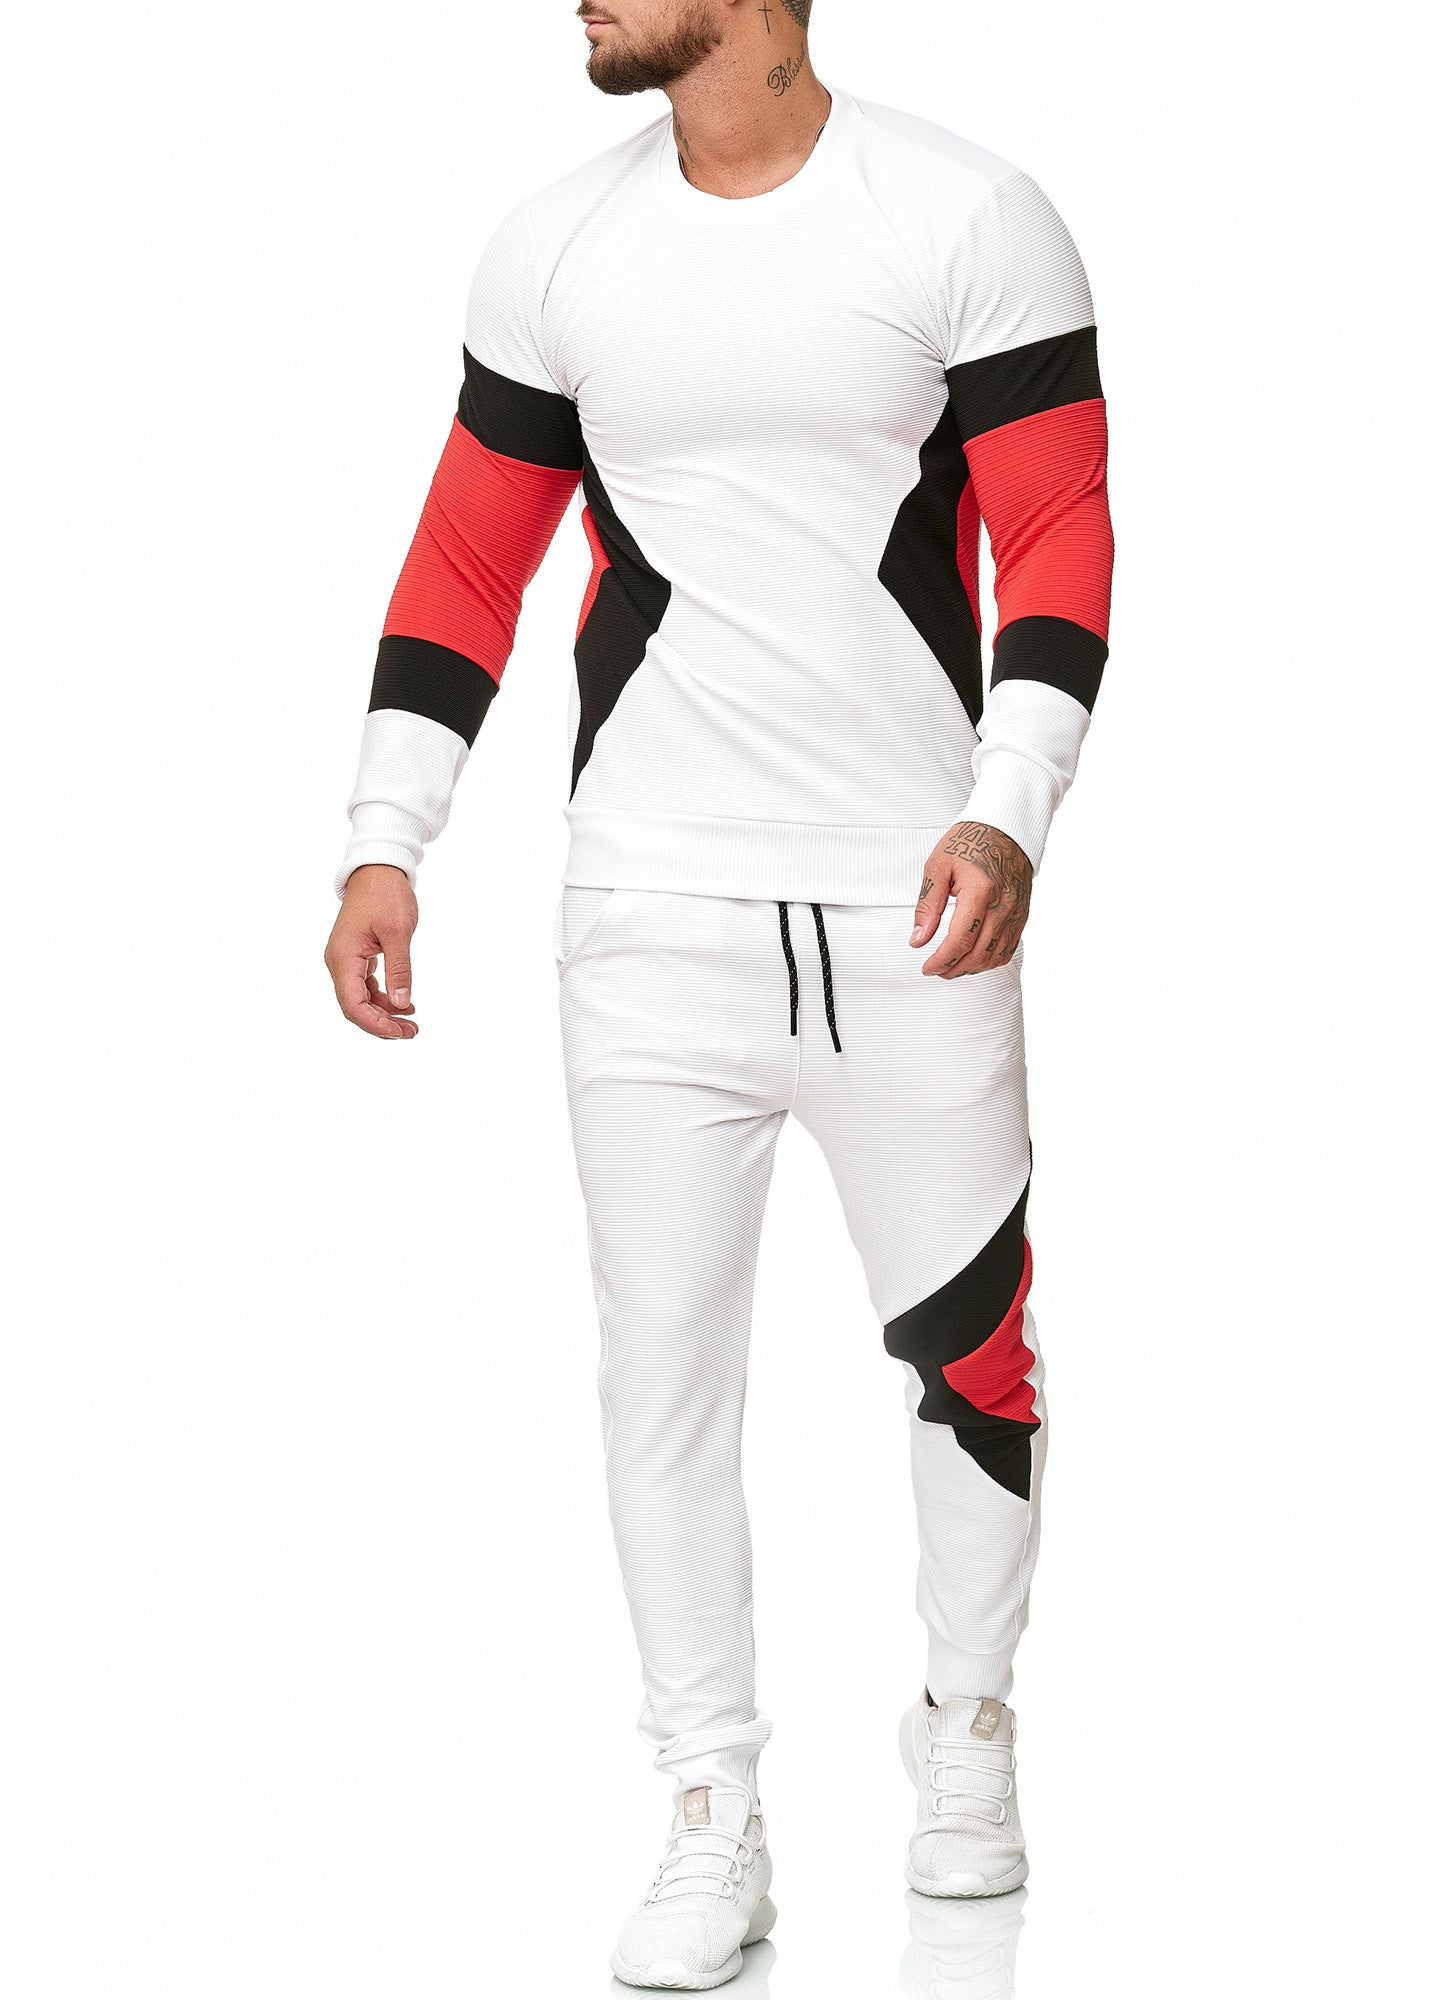 Sizag TrackSuit Sweatpant Sweater - White X0020B